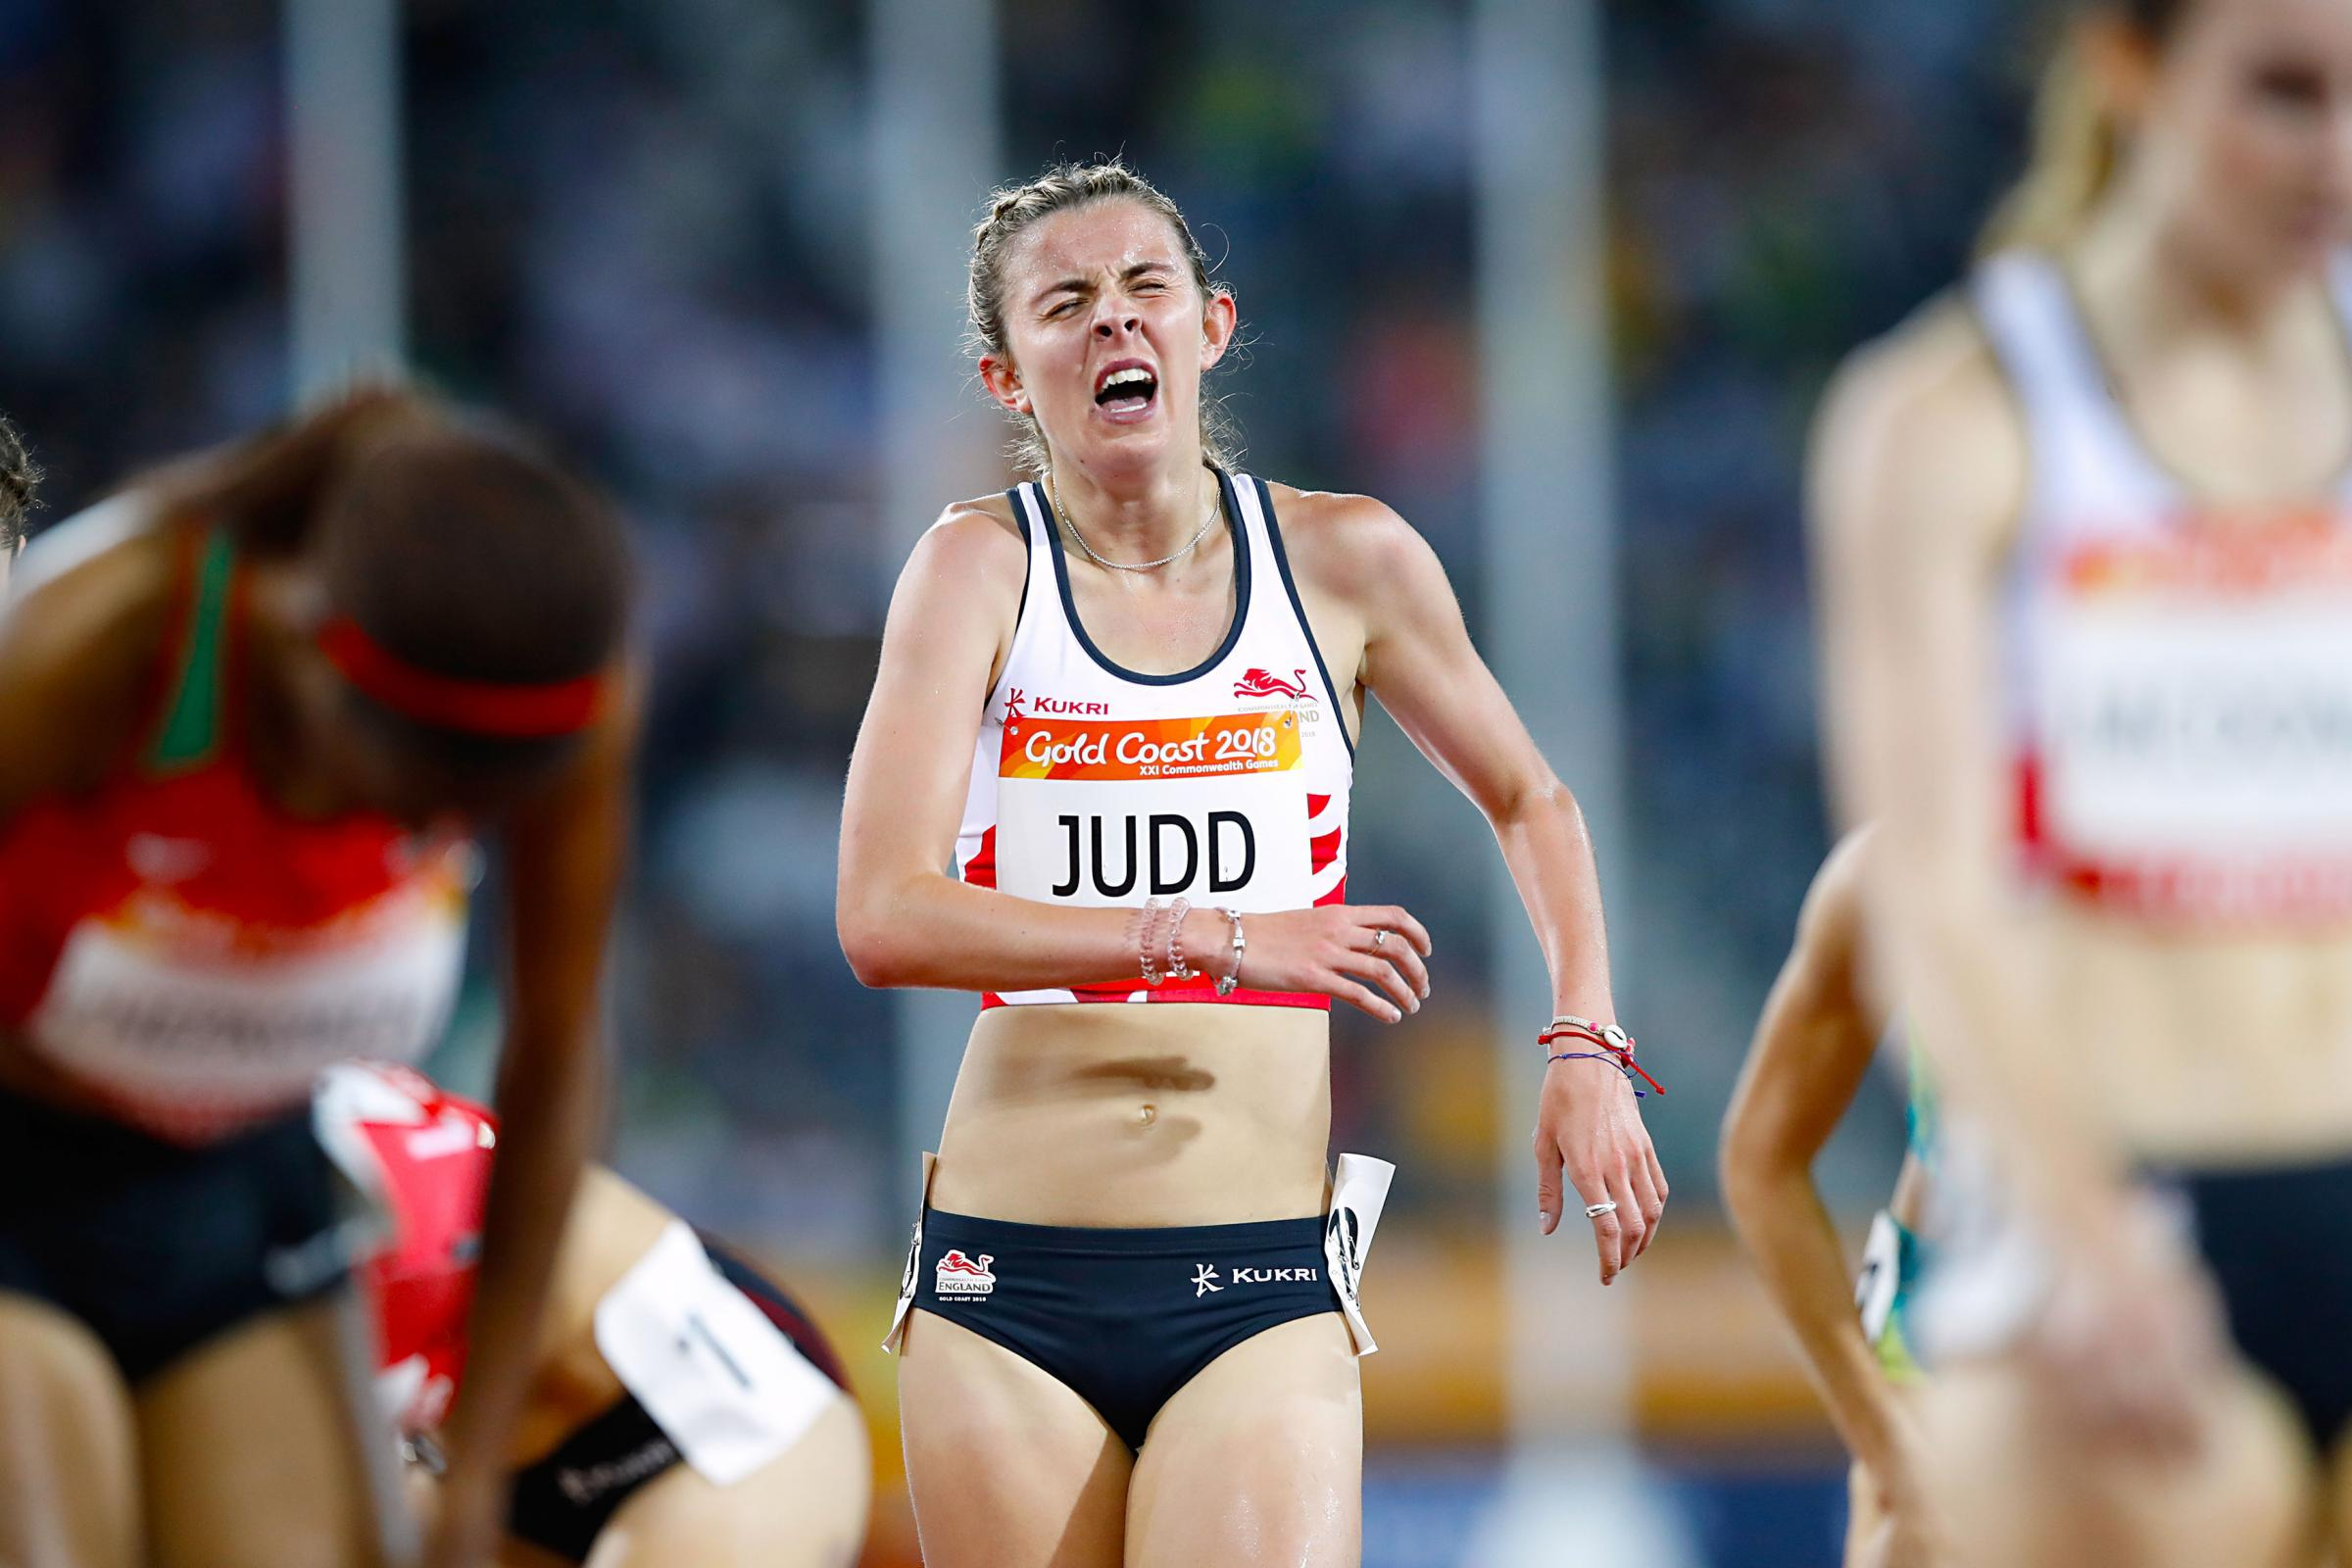 Tired - Jessica Judd at the finishing line